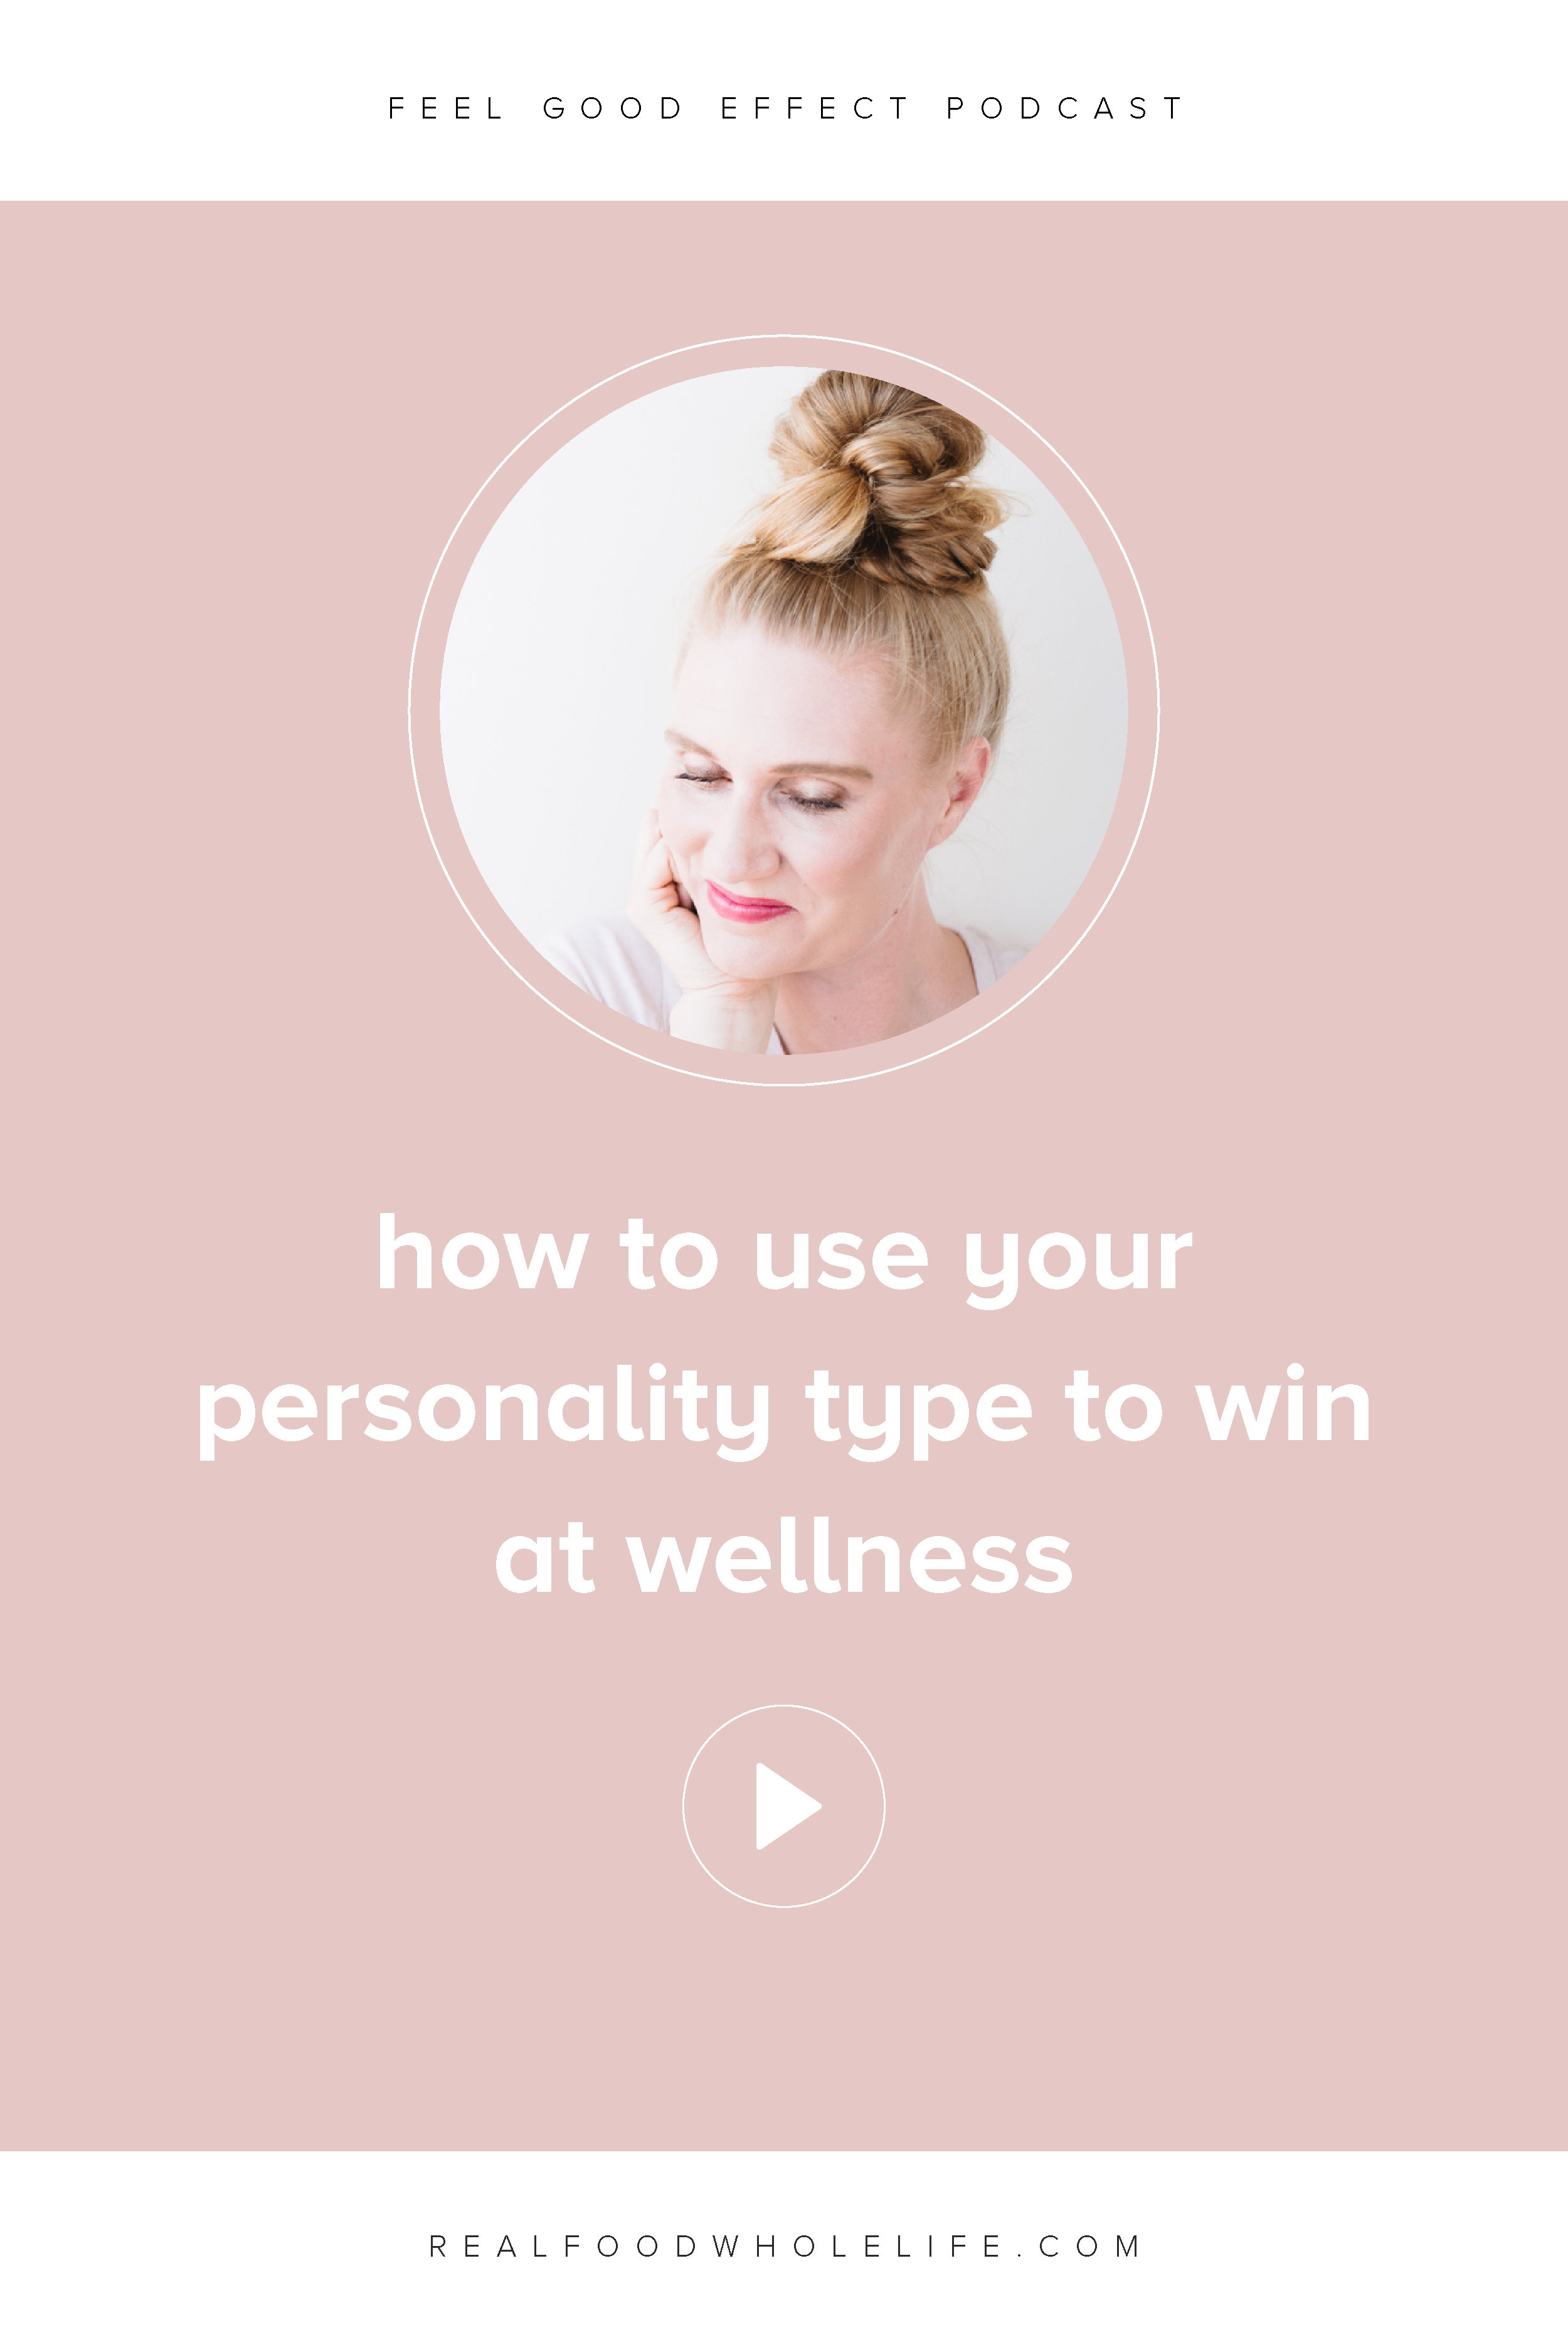 How to use your personality type to win at wellness, an episode from the Feel Good Effect podcast. #realfoodwholelife #feelgoodeffect #gentleisthenewperfect #healthy #wellnesspodcast #wellness #personality